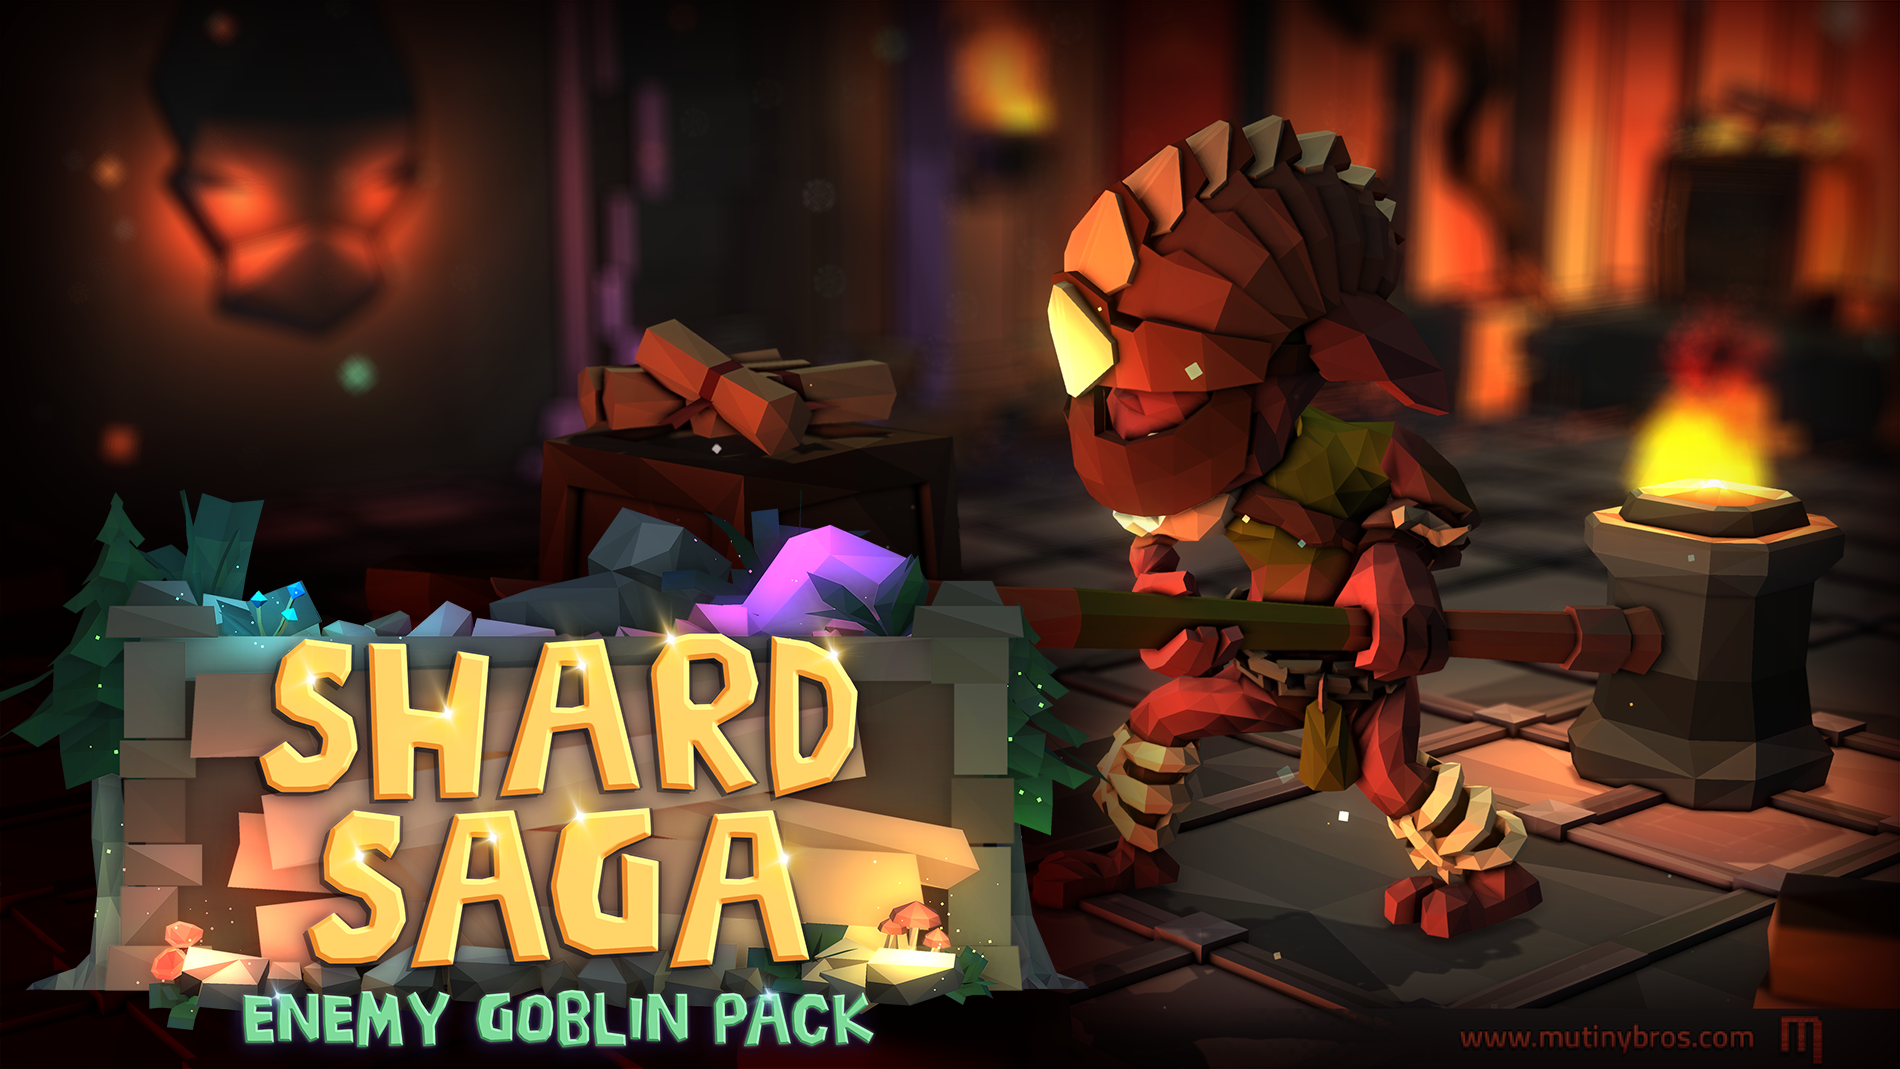 Shard Saga: Enemy Goblin Pack